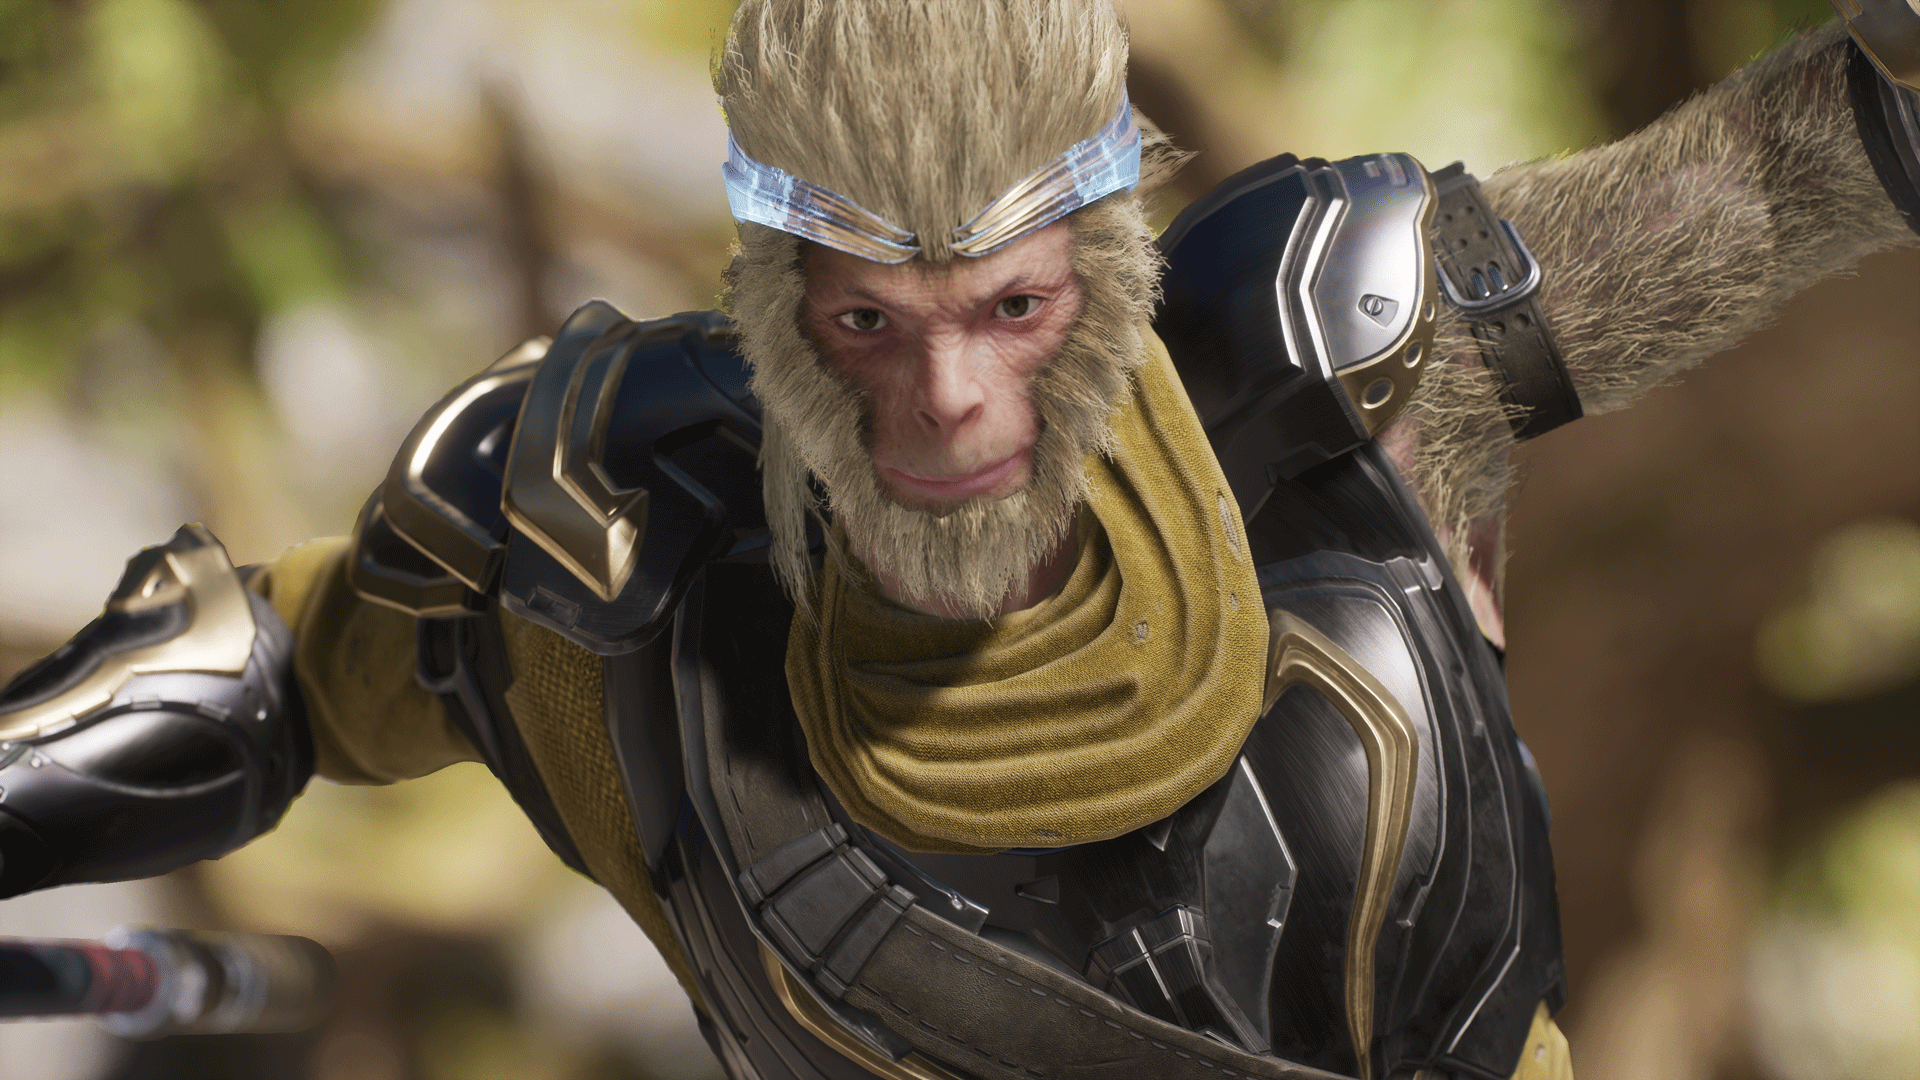 Paragon%2Fblog%2Fcommunity-guide-wukong%2FResized-Wukong-1920x1080-24bf299aa3a93bf4298c788b0df8c26a9848a90b